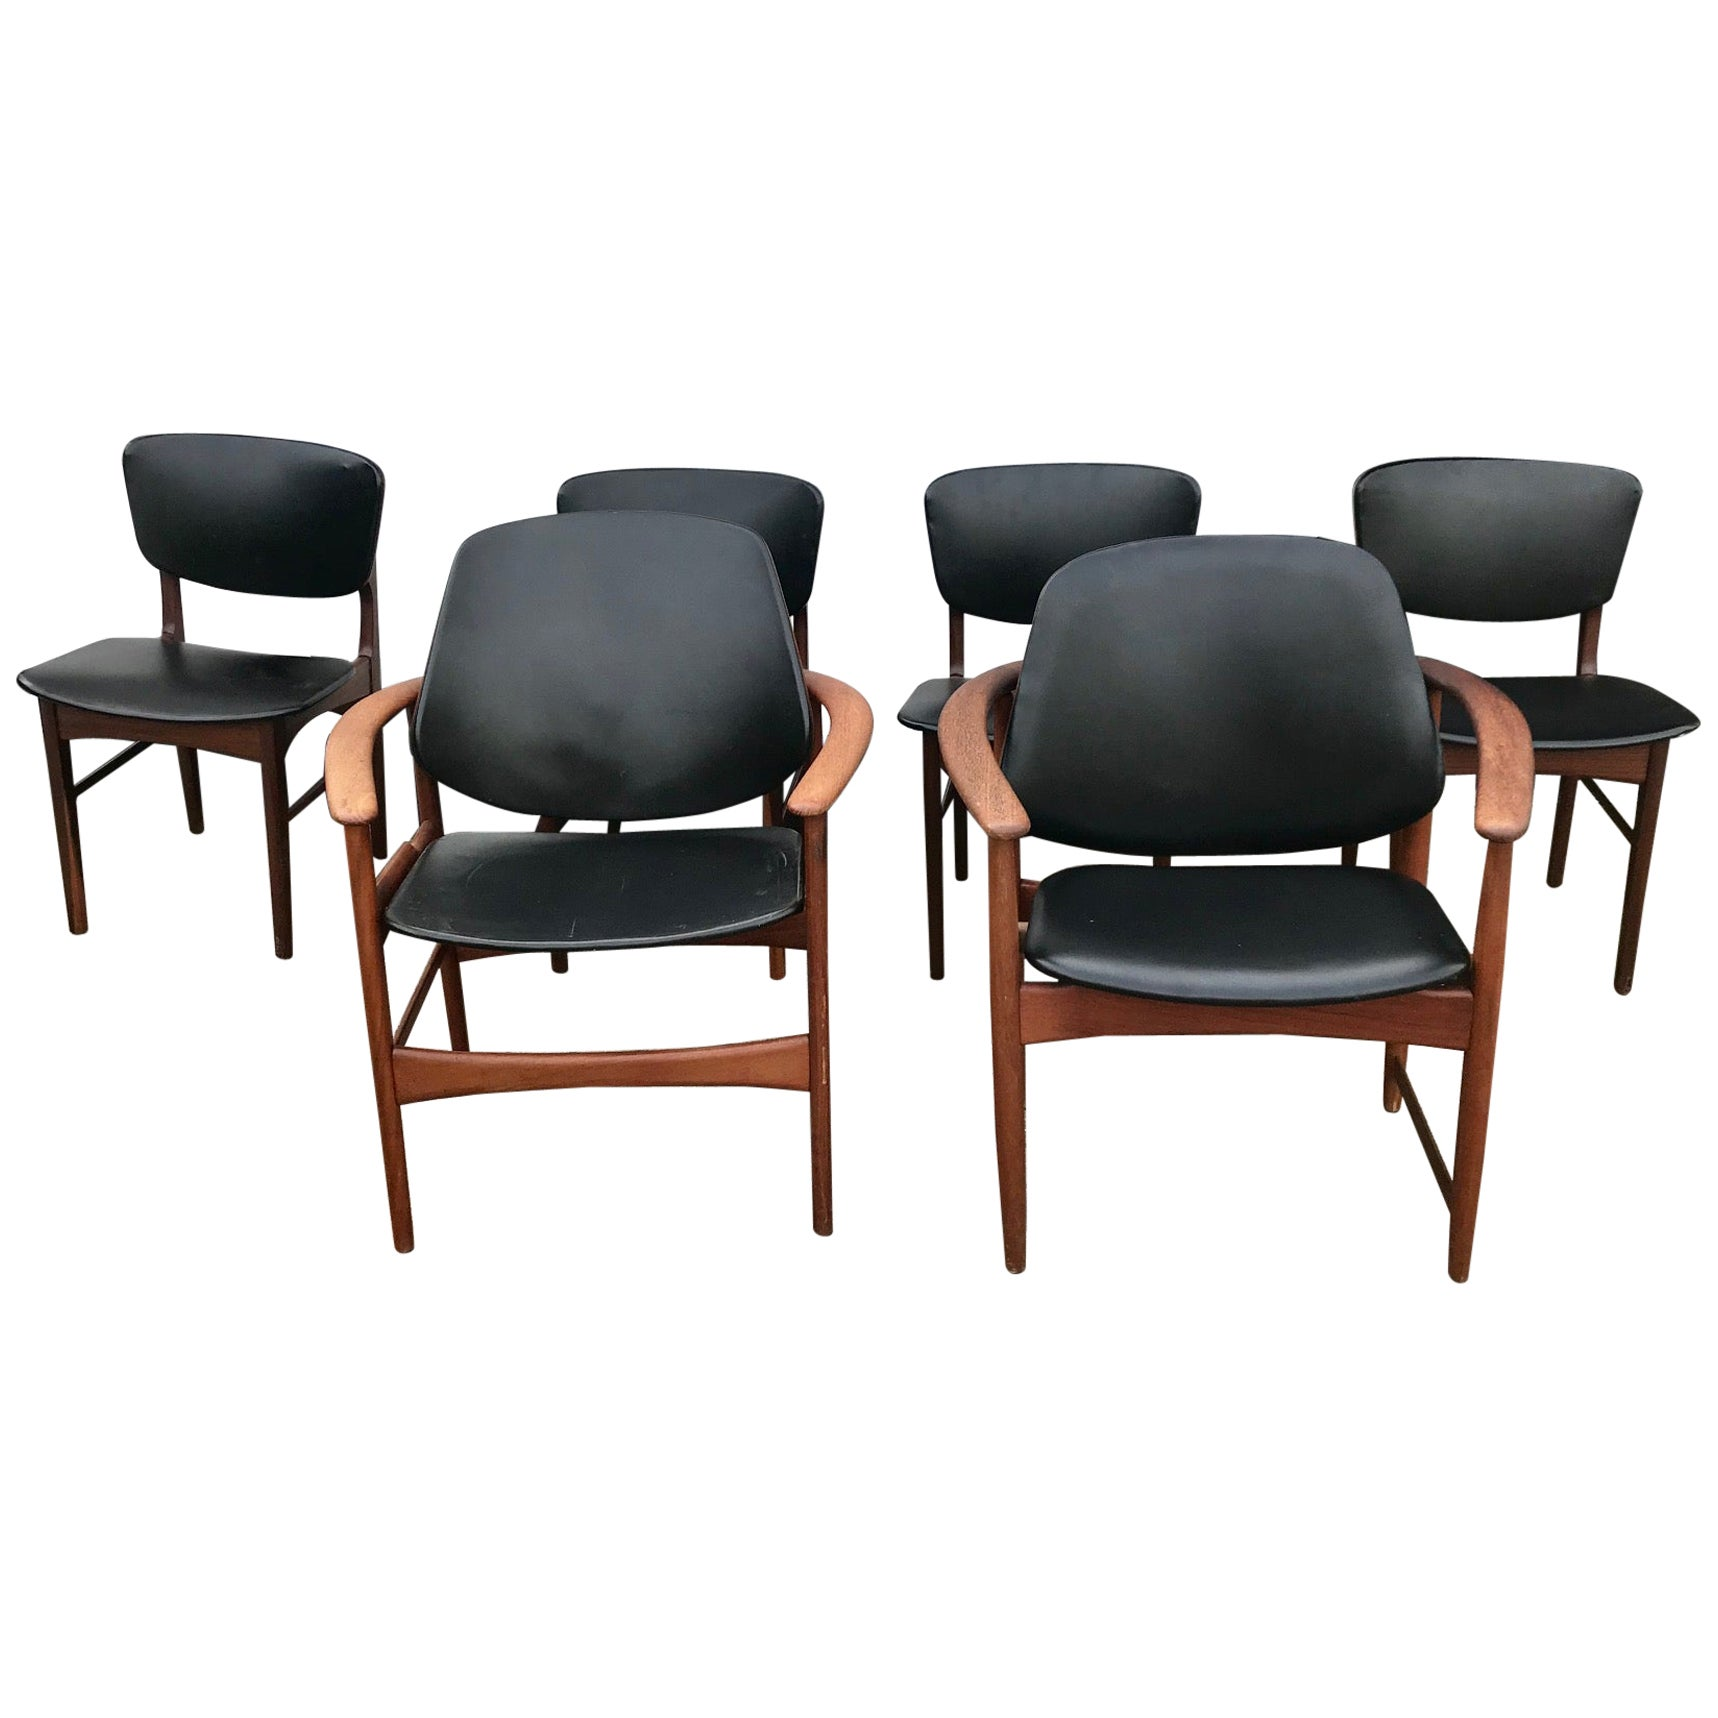 Arne Hovmand Olsen King and Queen Dining Chairs in Teak, Jutex 1950s, Set of 6